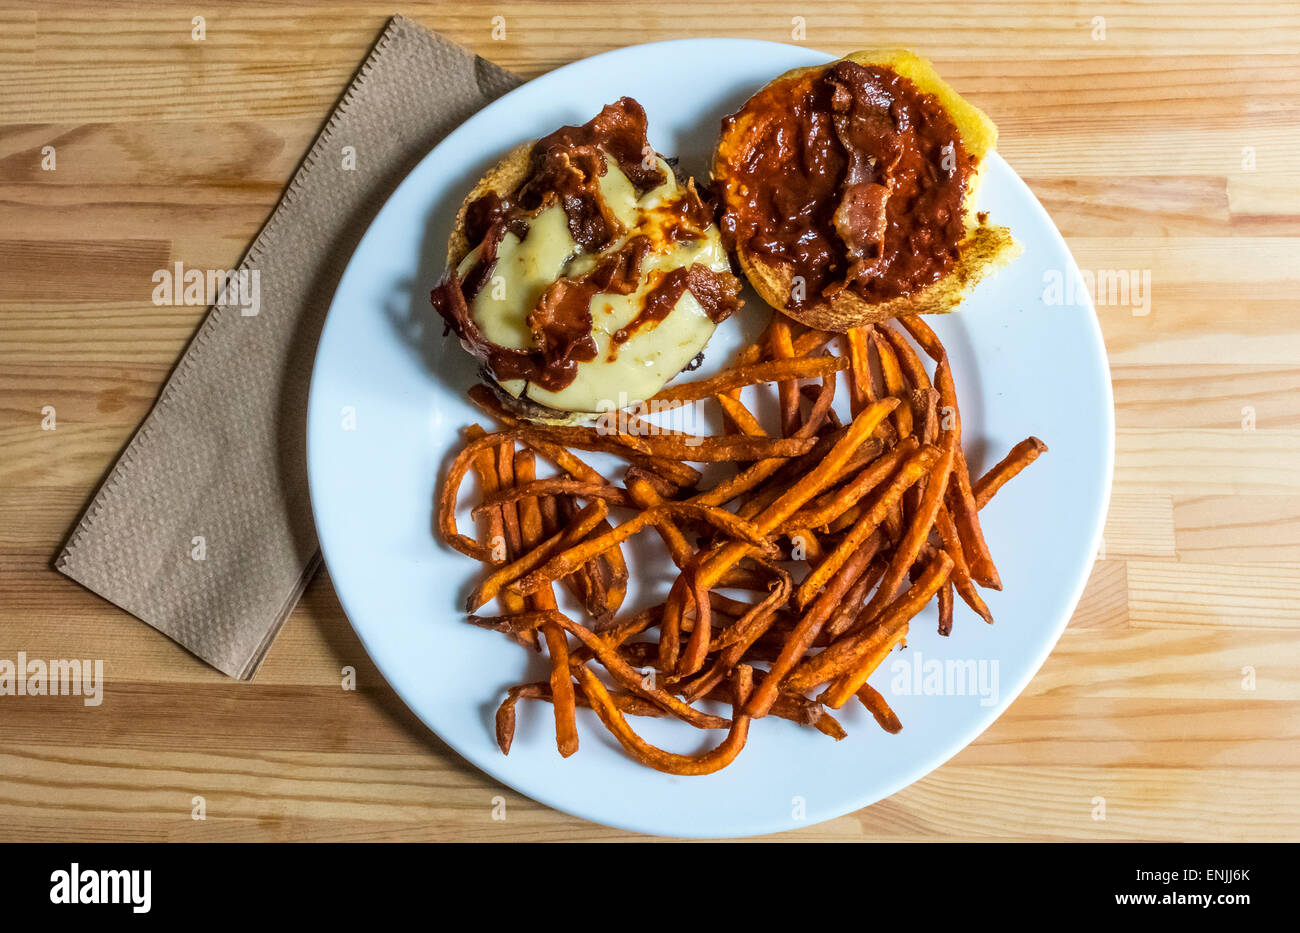 Bacon cheeseburger with spicy sauce and shoestring sweet potato fries - Stock Image